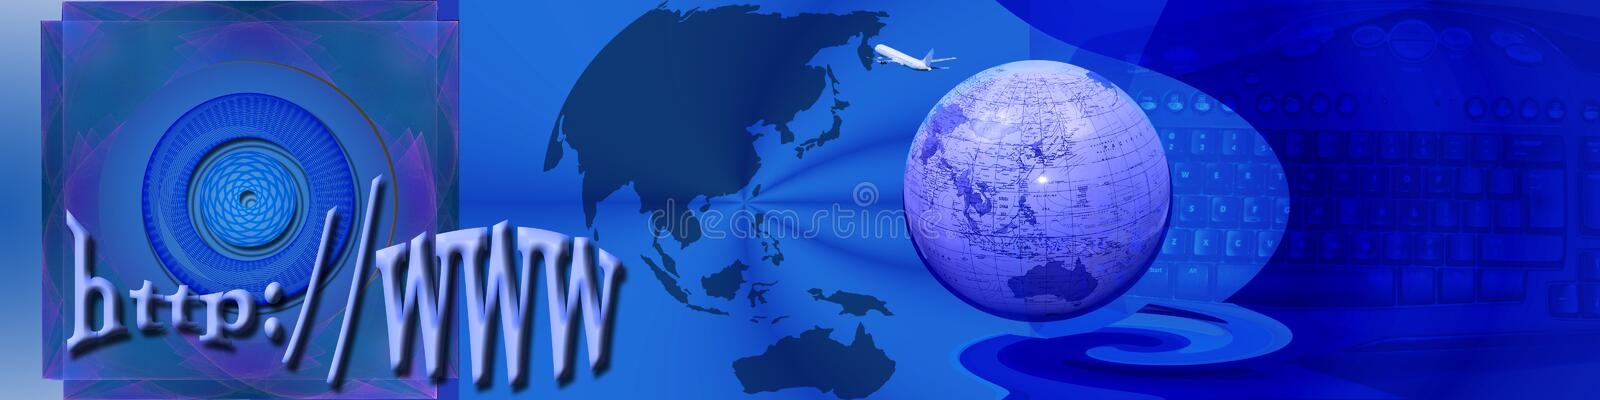 Header Internet and exploration. This banner / header design has a creative abstract background with a gridlike pattern in the circle. The globe, continent vector illustration